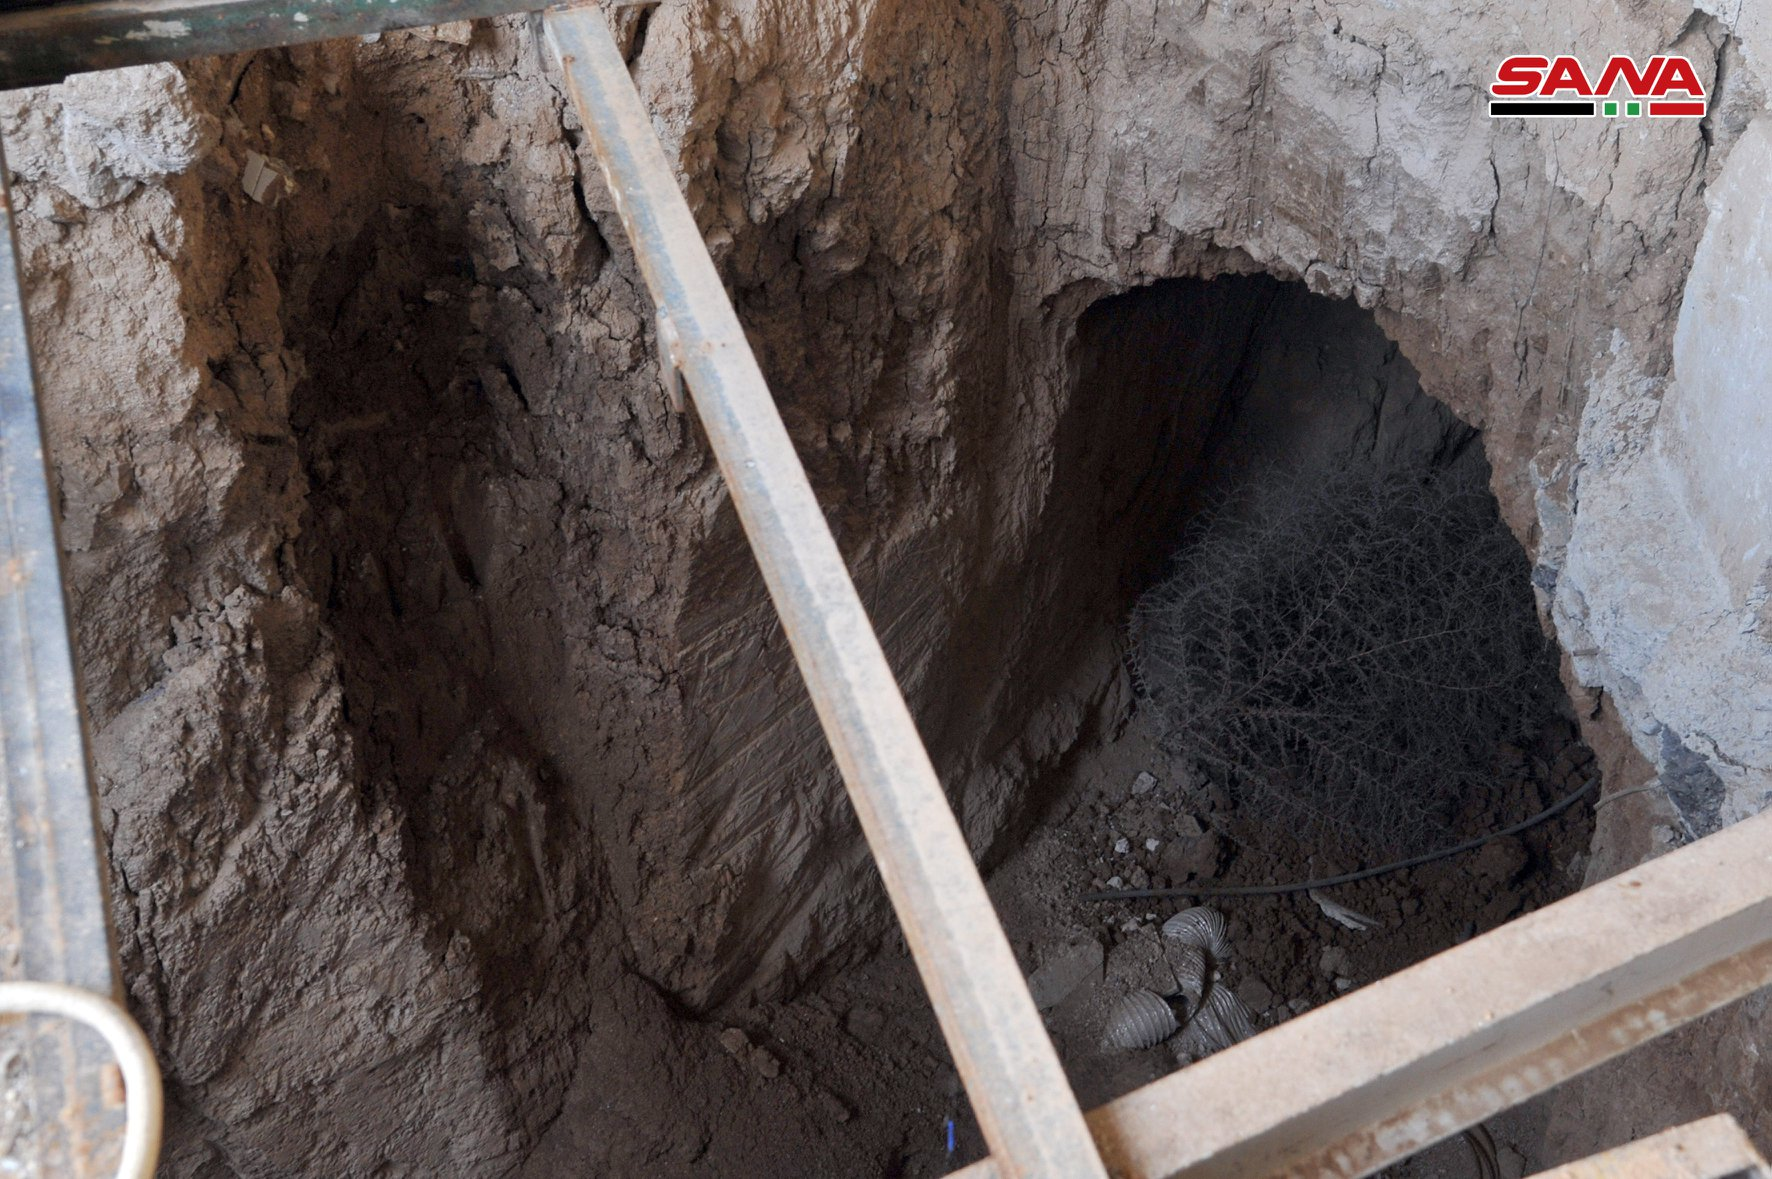 Syrian Army Uncovers Deep Tunnel Dug By Militants Southwest Of Damascus